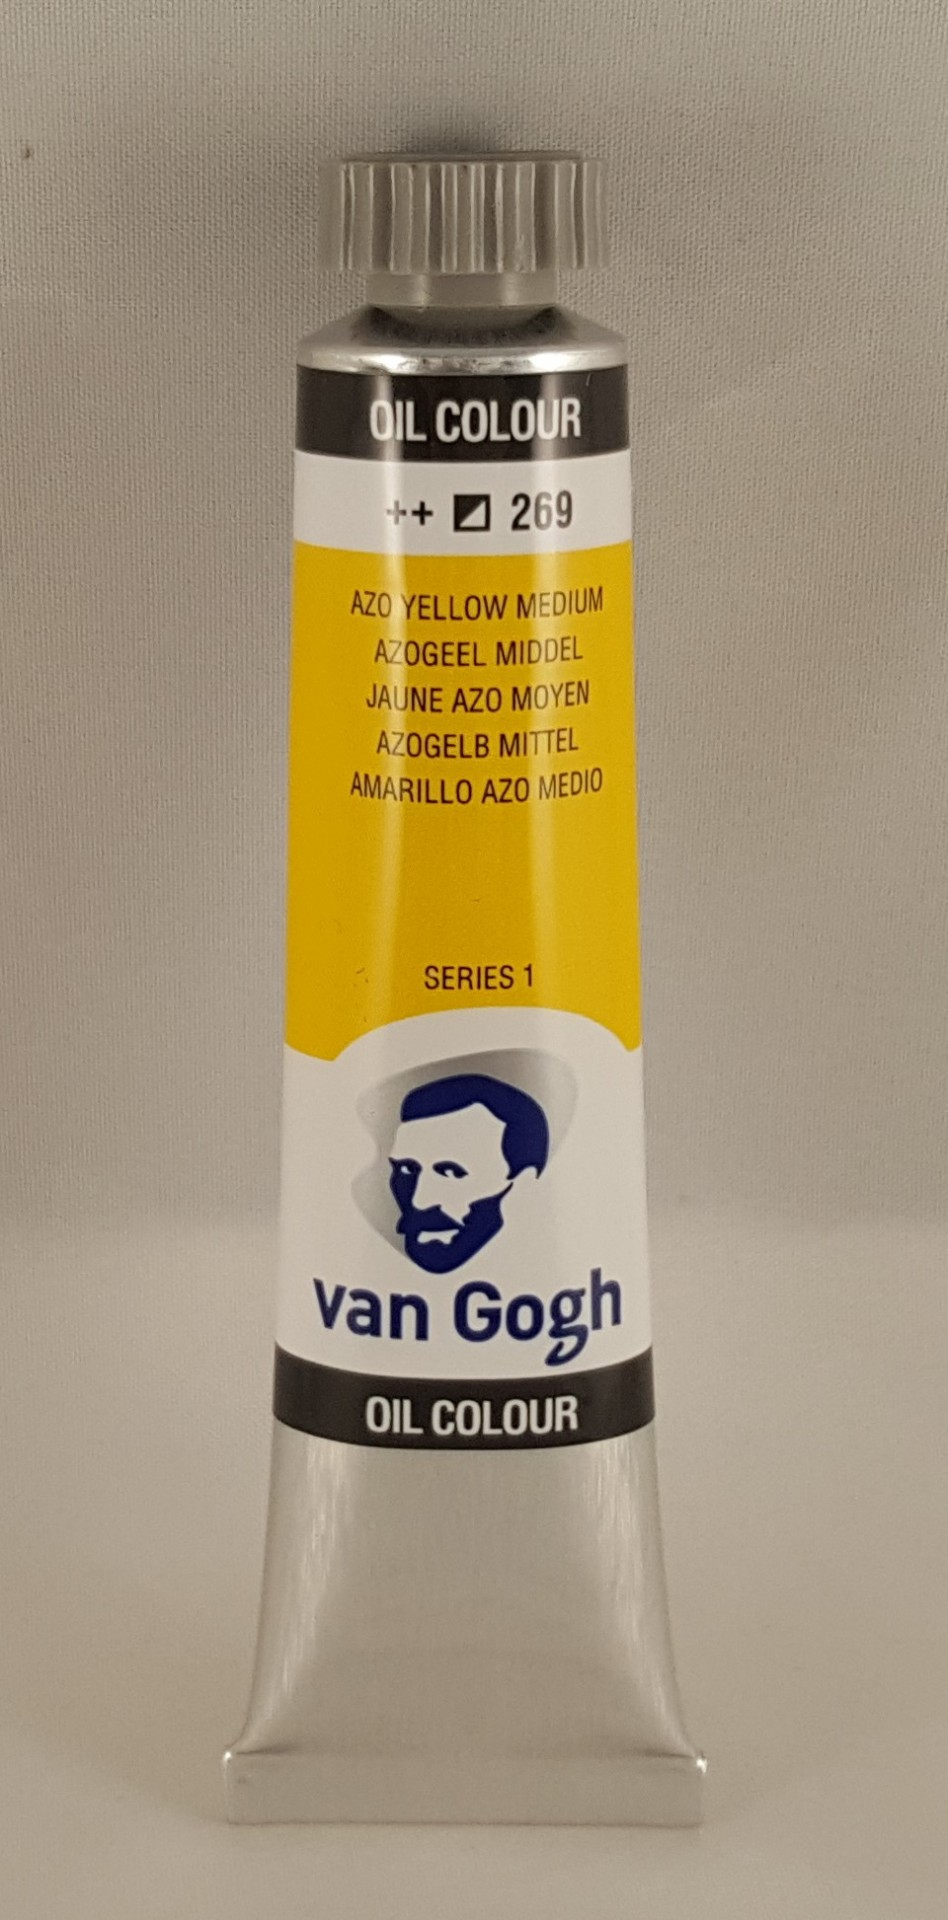 Tinta de óleo Van Gogh azo yellow medium